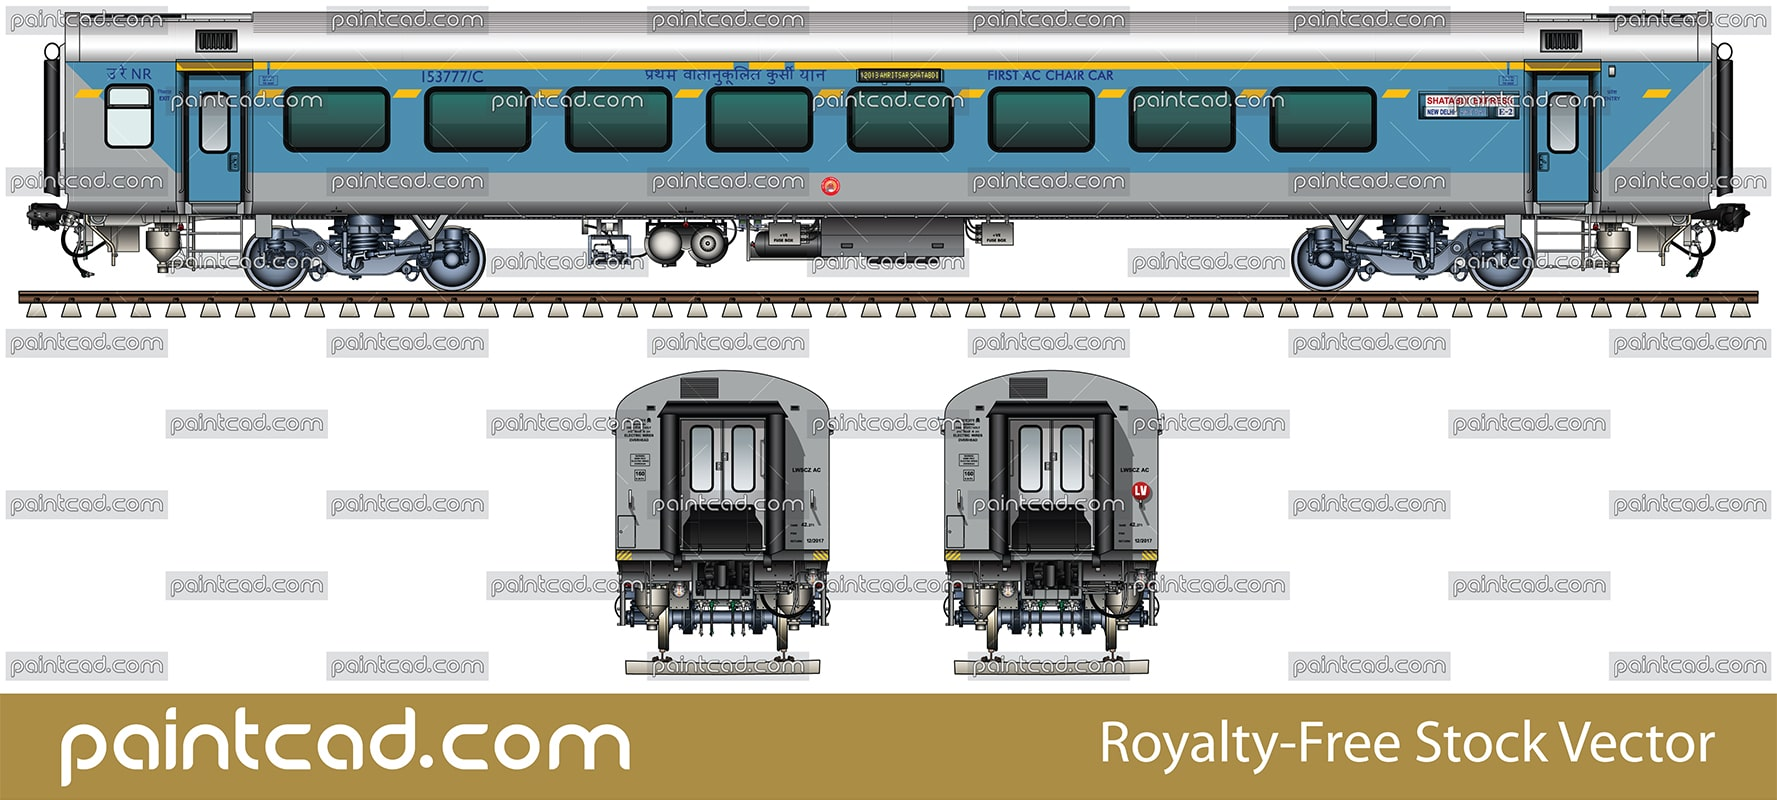 First AC chair car by New Delhi - Amritsar Shatabdi Express - vector illustration